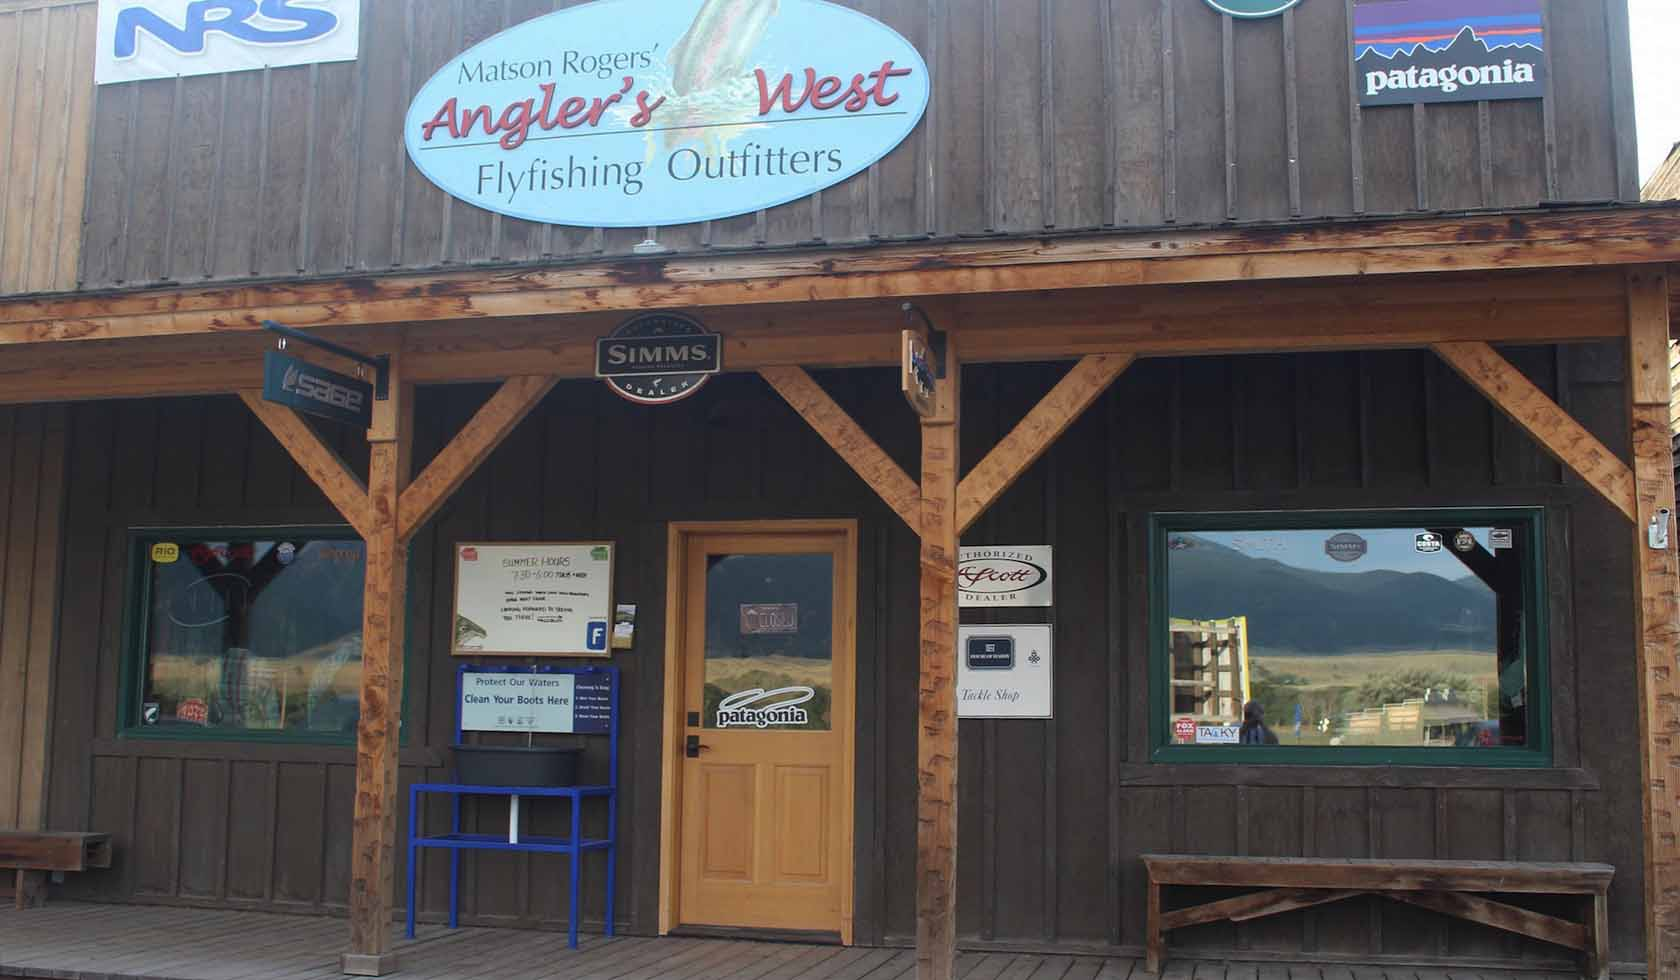 Angler's West Flyfishing Outfitters profile image